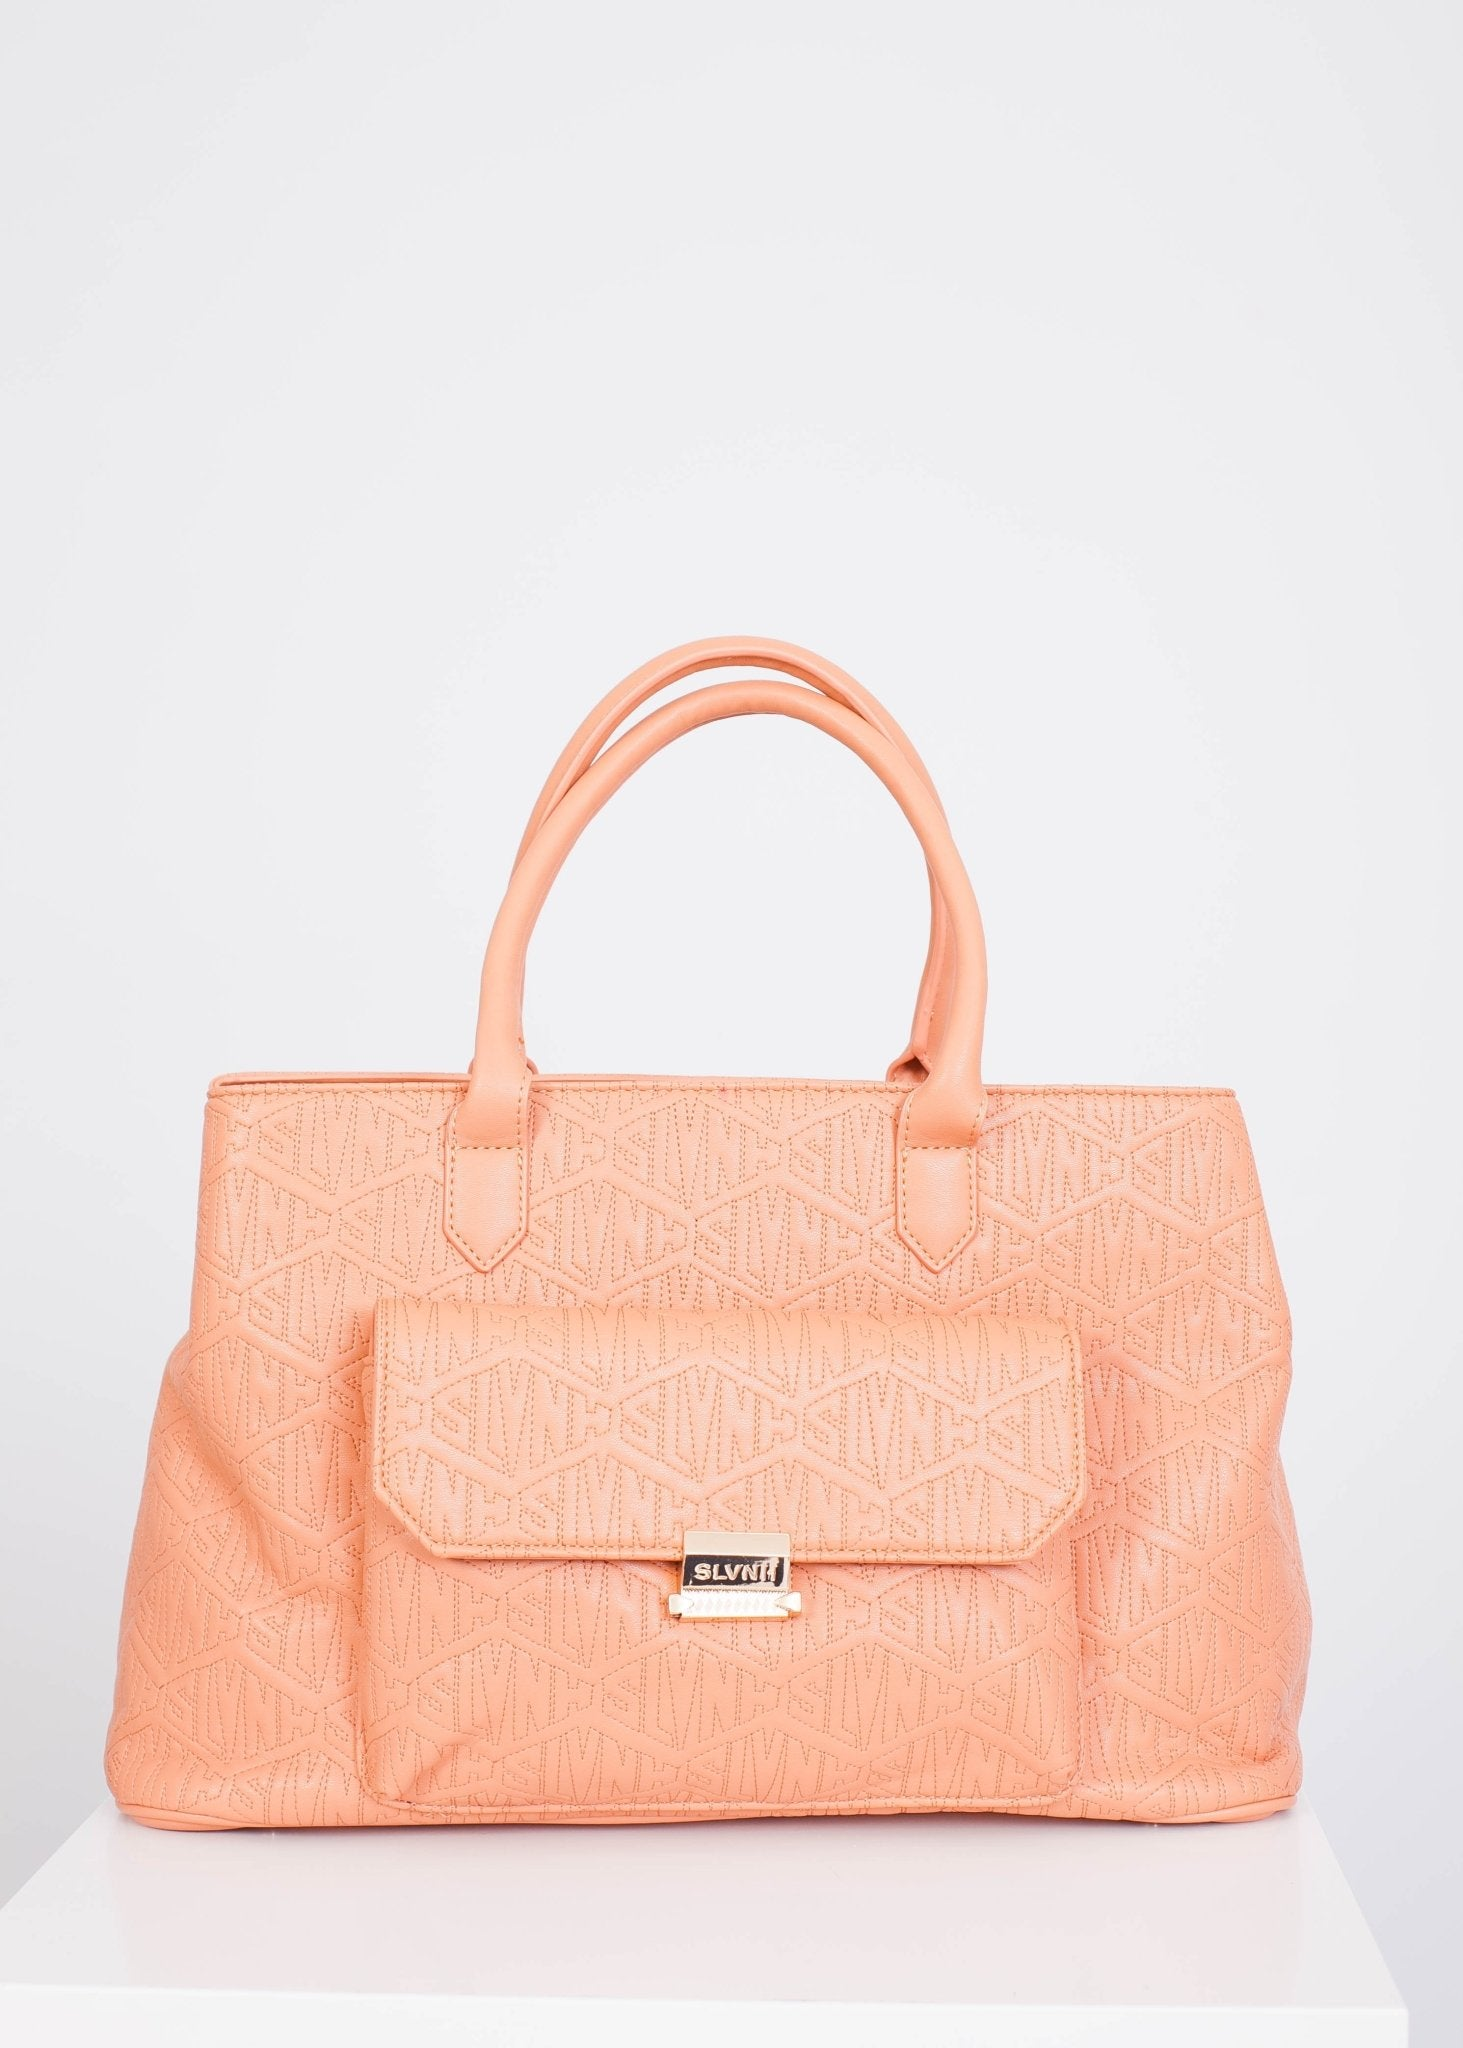 Sophia Peach Handbag - The Walk in Wardrobe